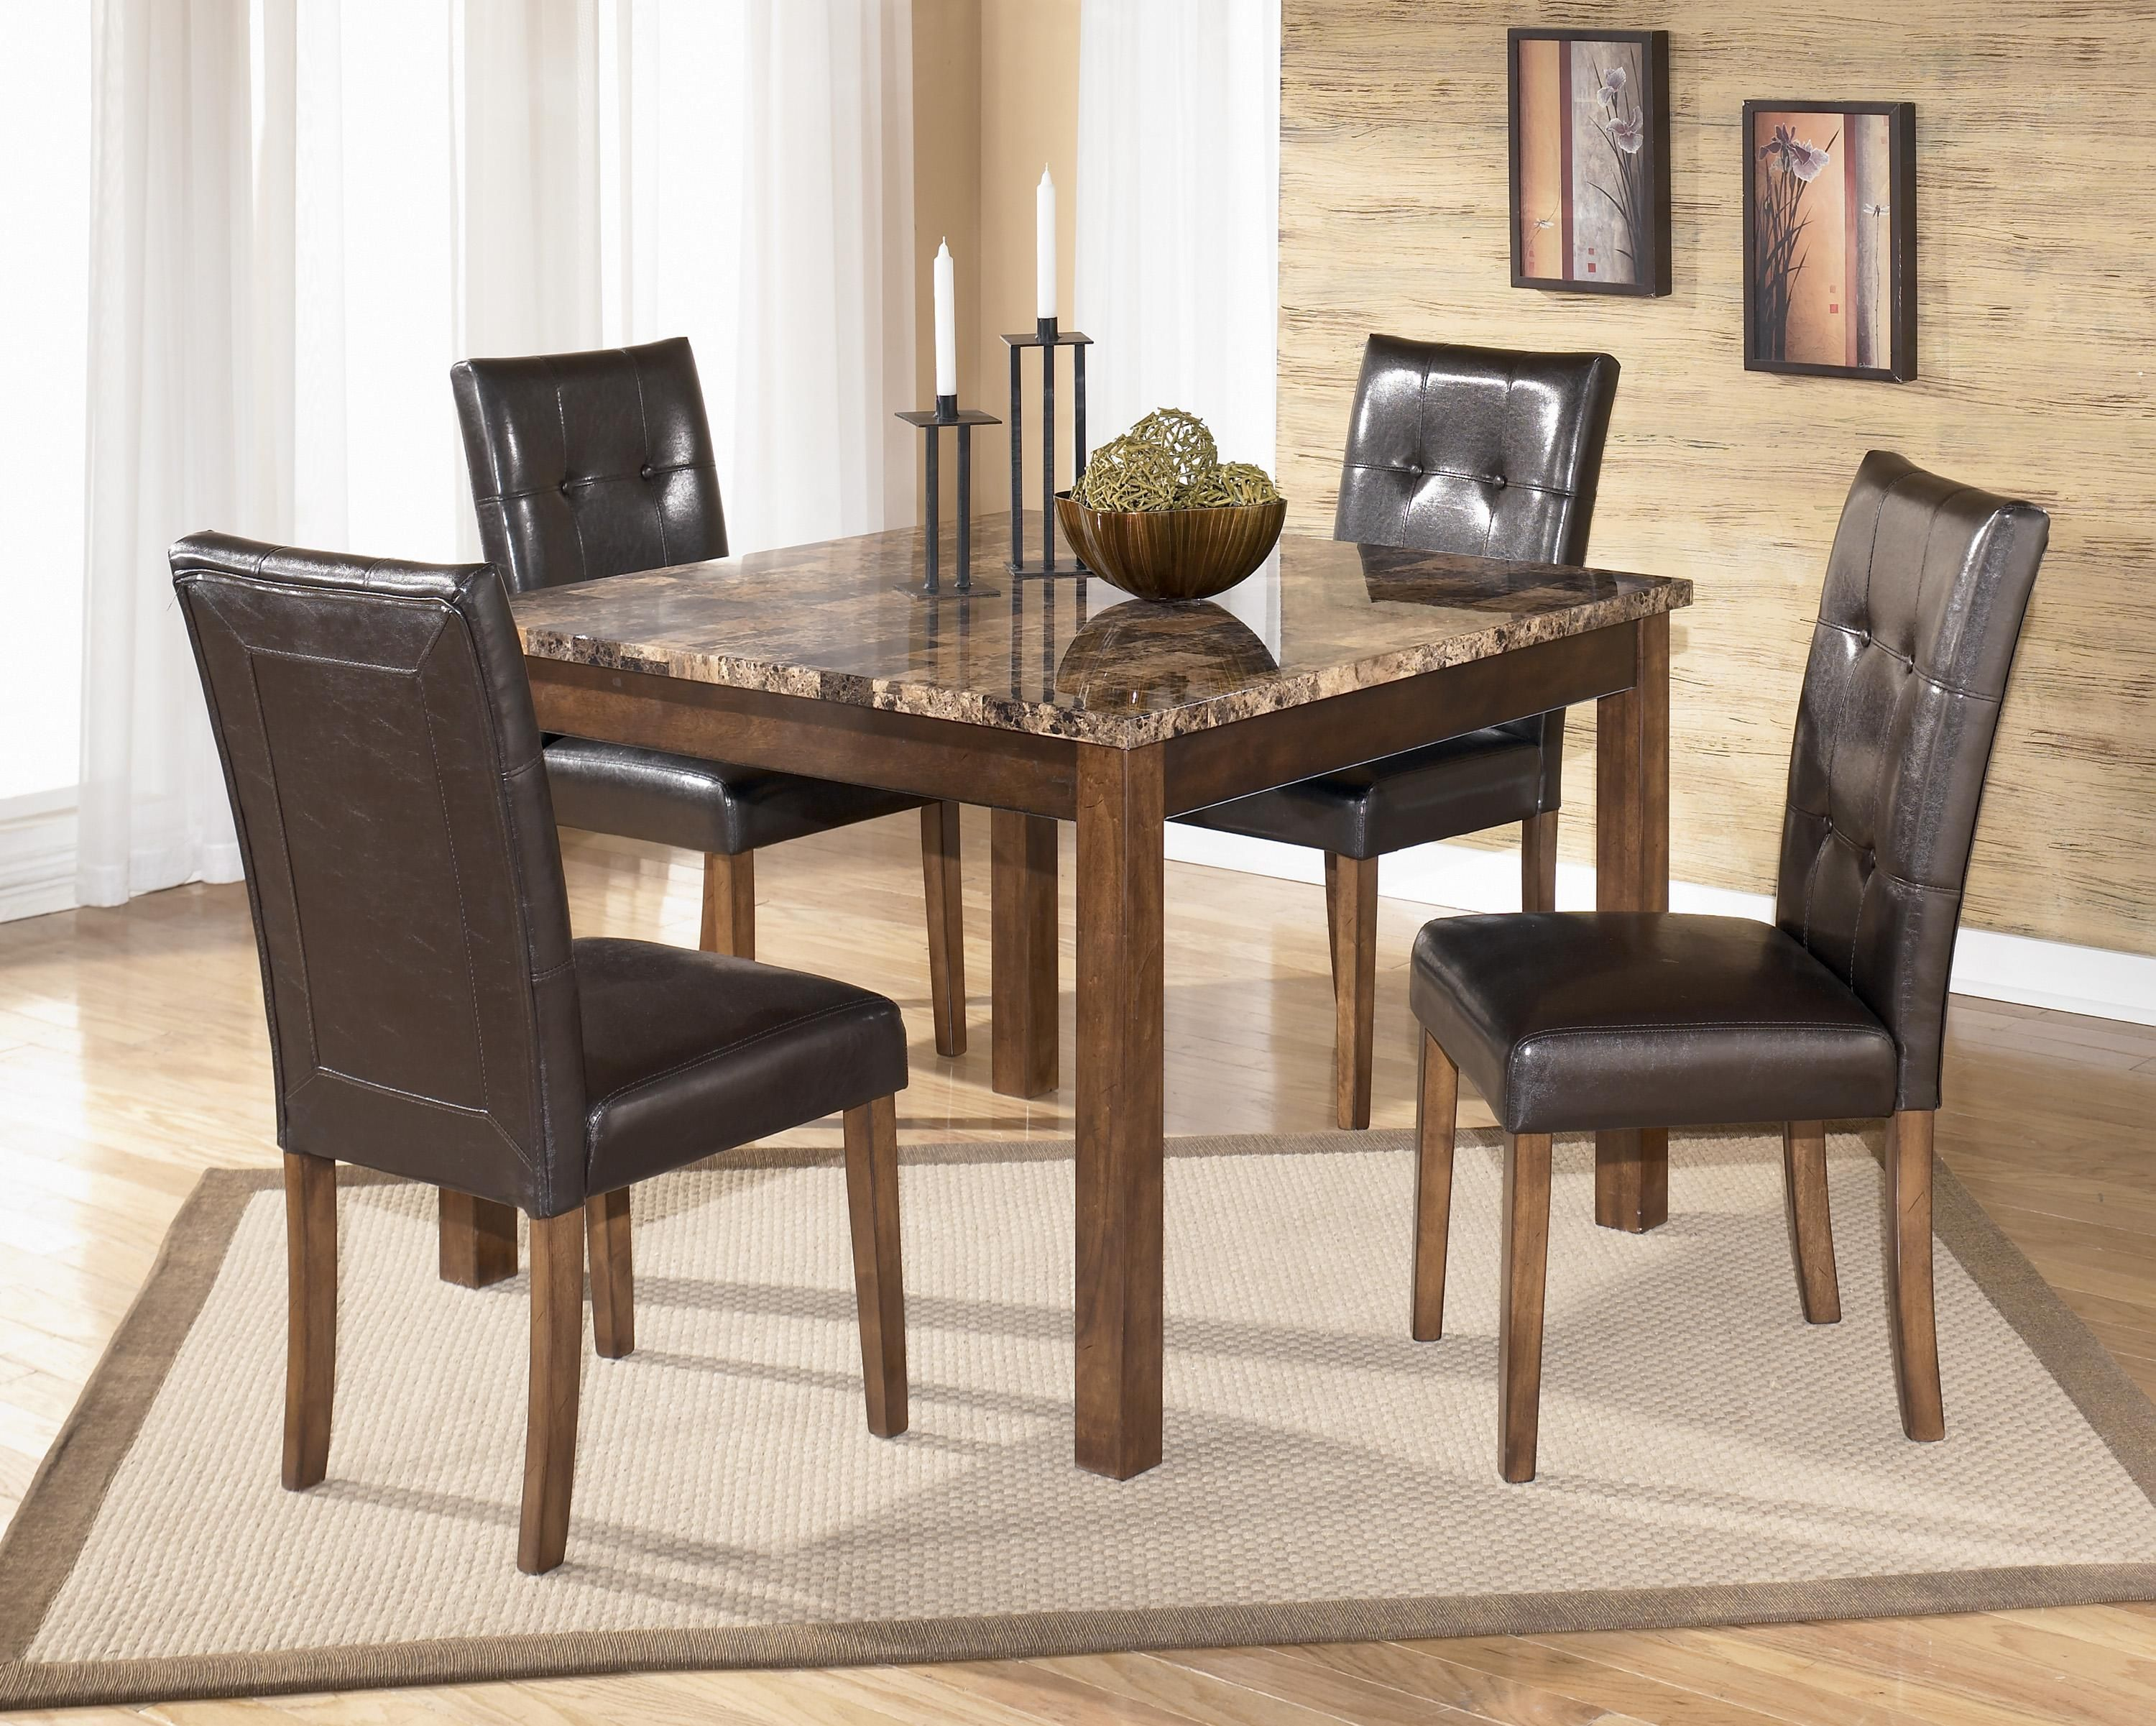 Merveilleux Signature Design By Ashley Theo 5 Piece Square Table Set   Item Number:  D158